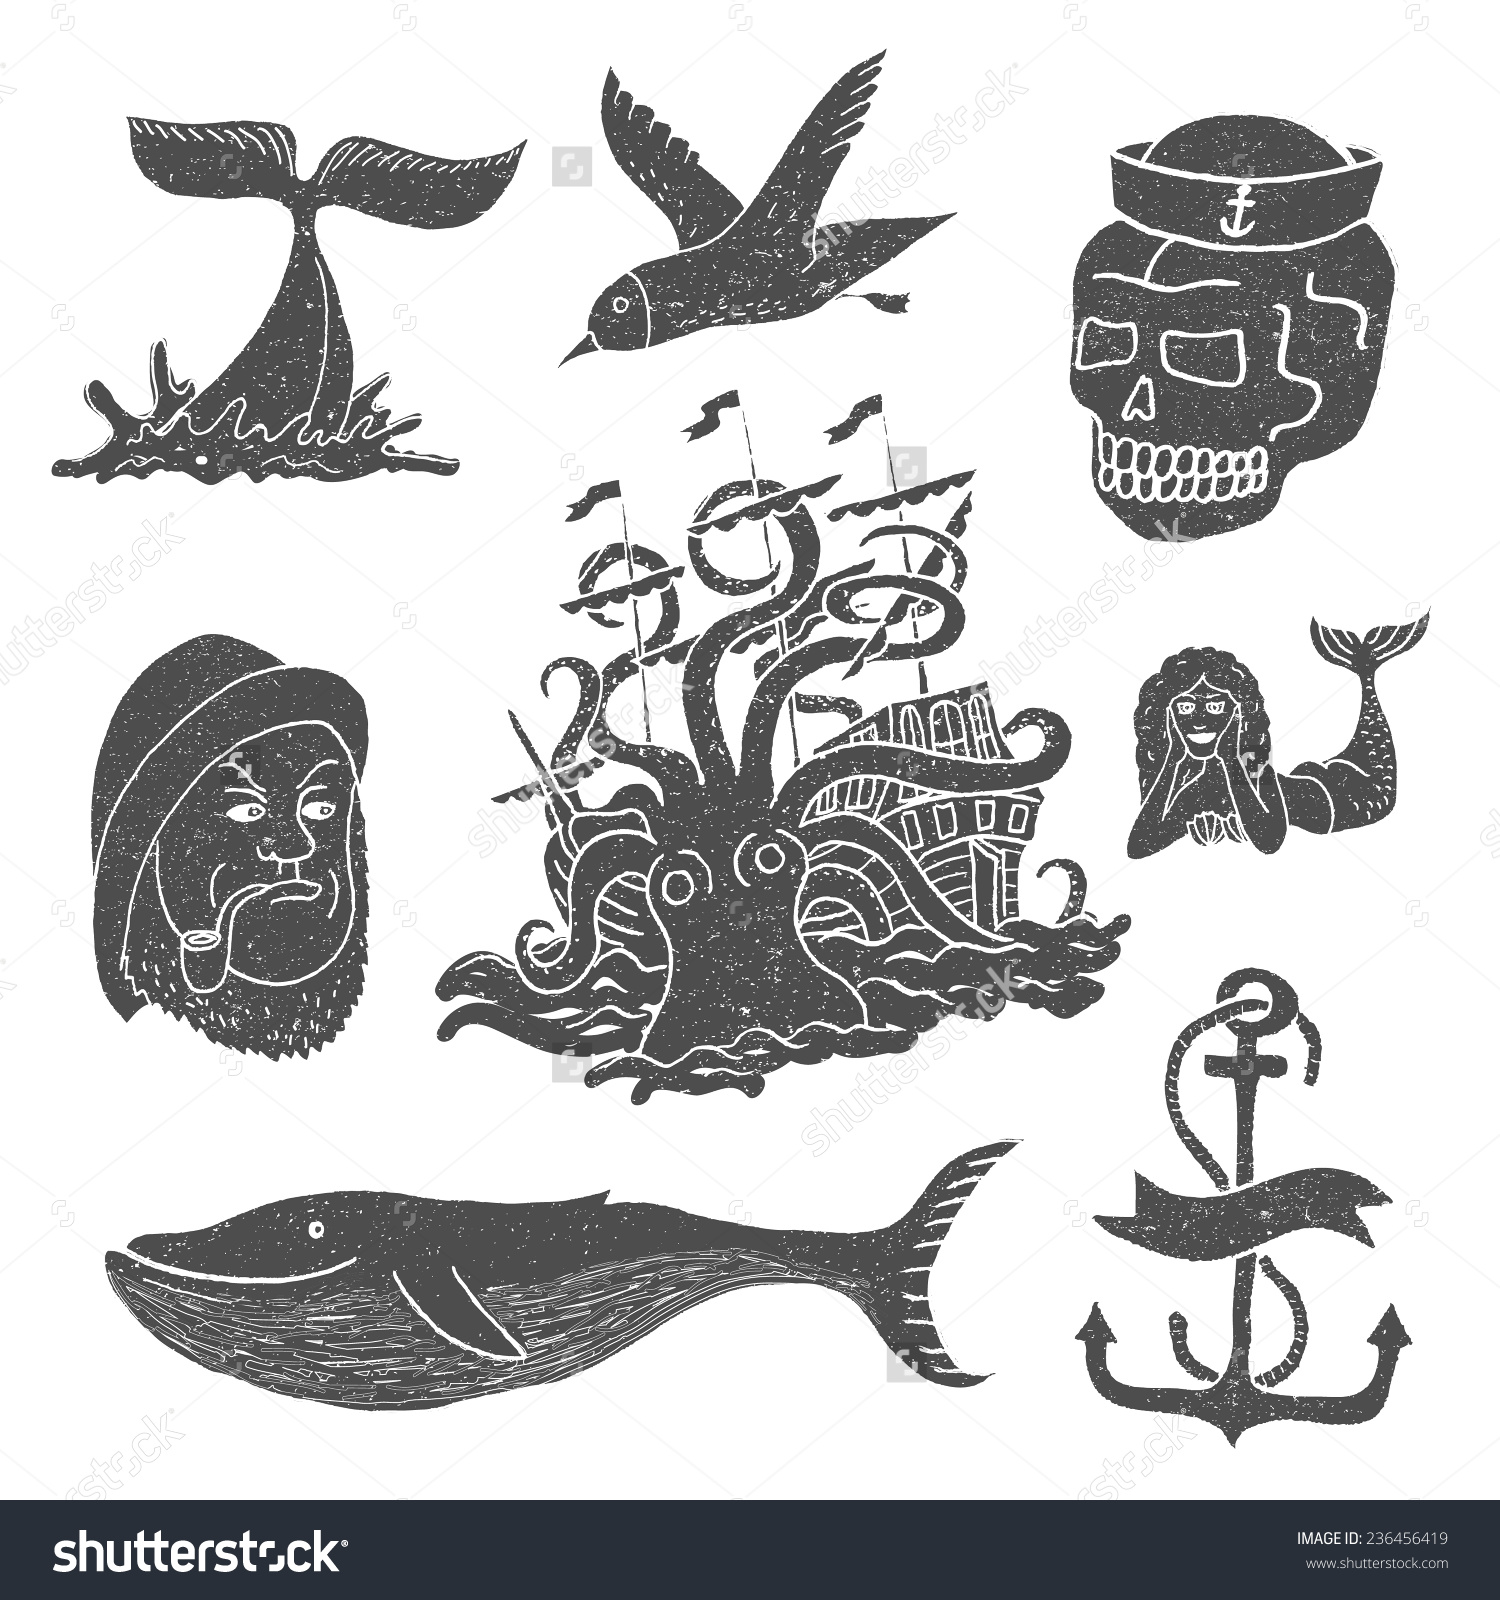 Marine Themes Tattoo Sailor Ocean Octopus Stock Vector 236456419.